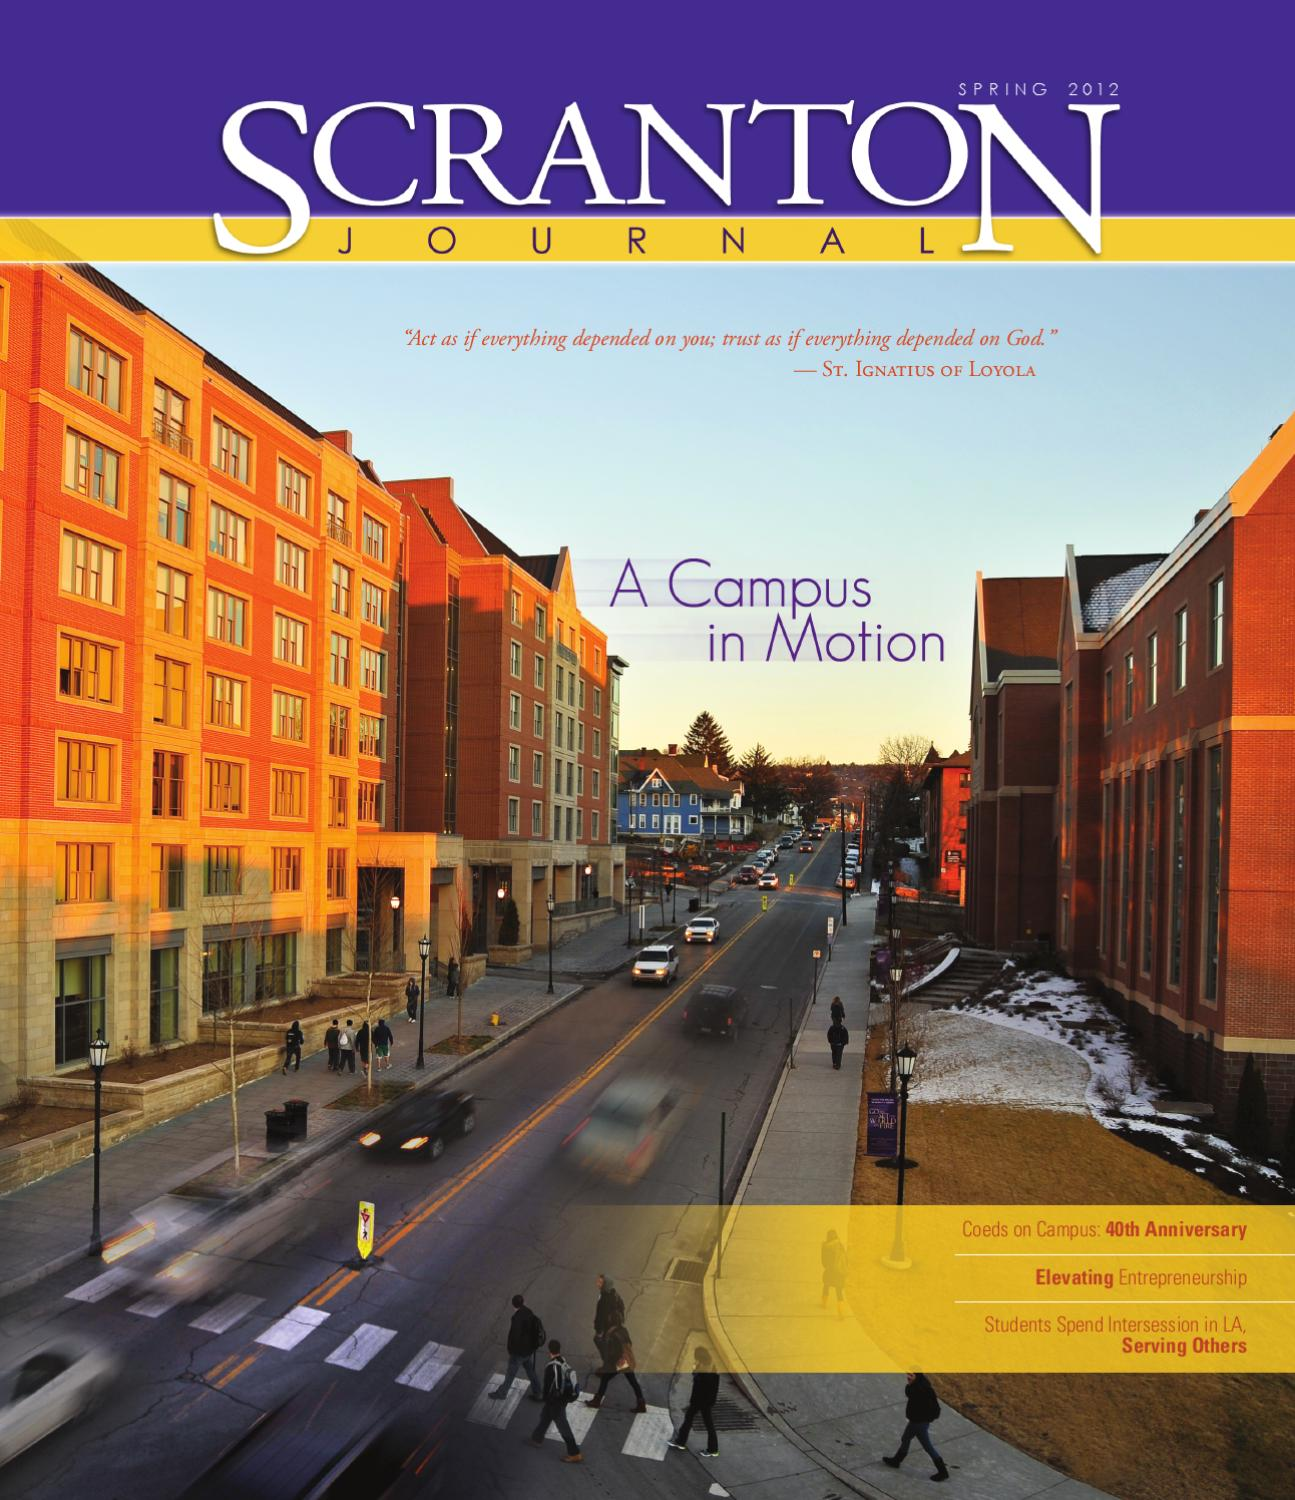 the scranton journal spring by the university of scranton the scranton journal spring 2012 by the university of scranton issuu